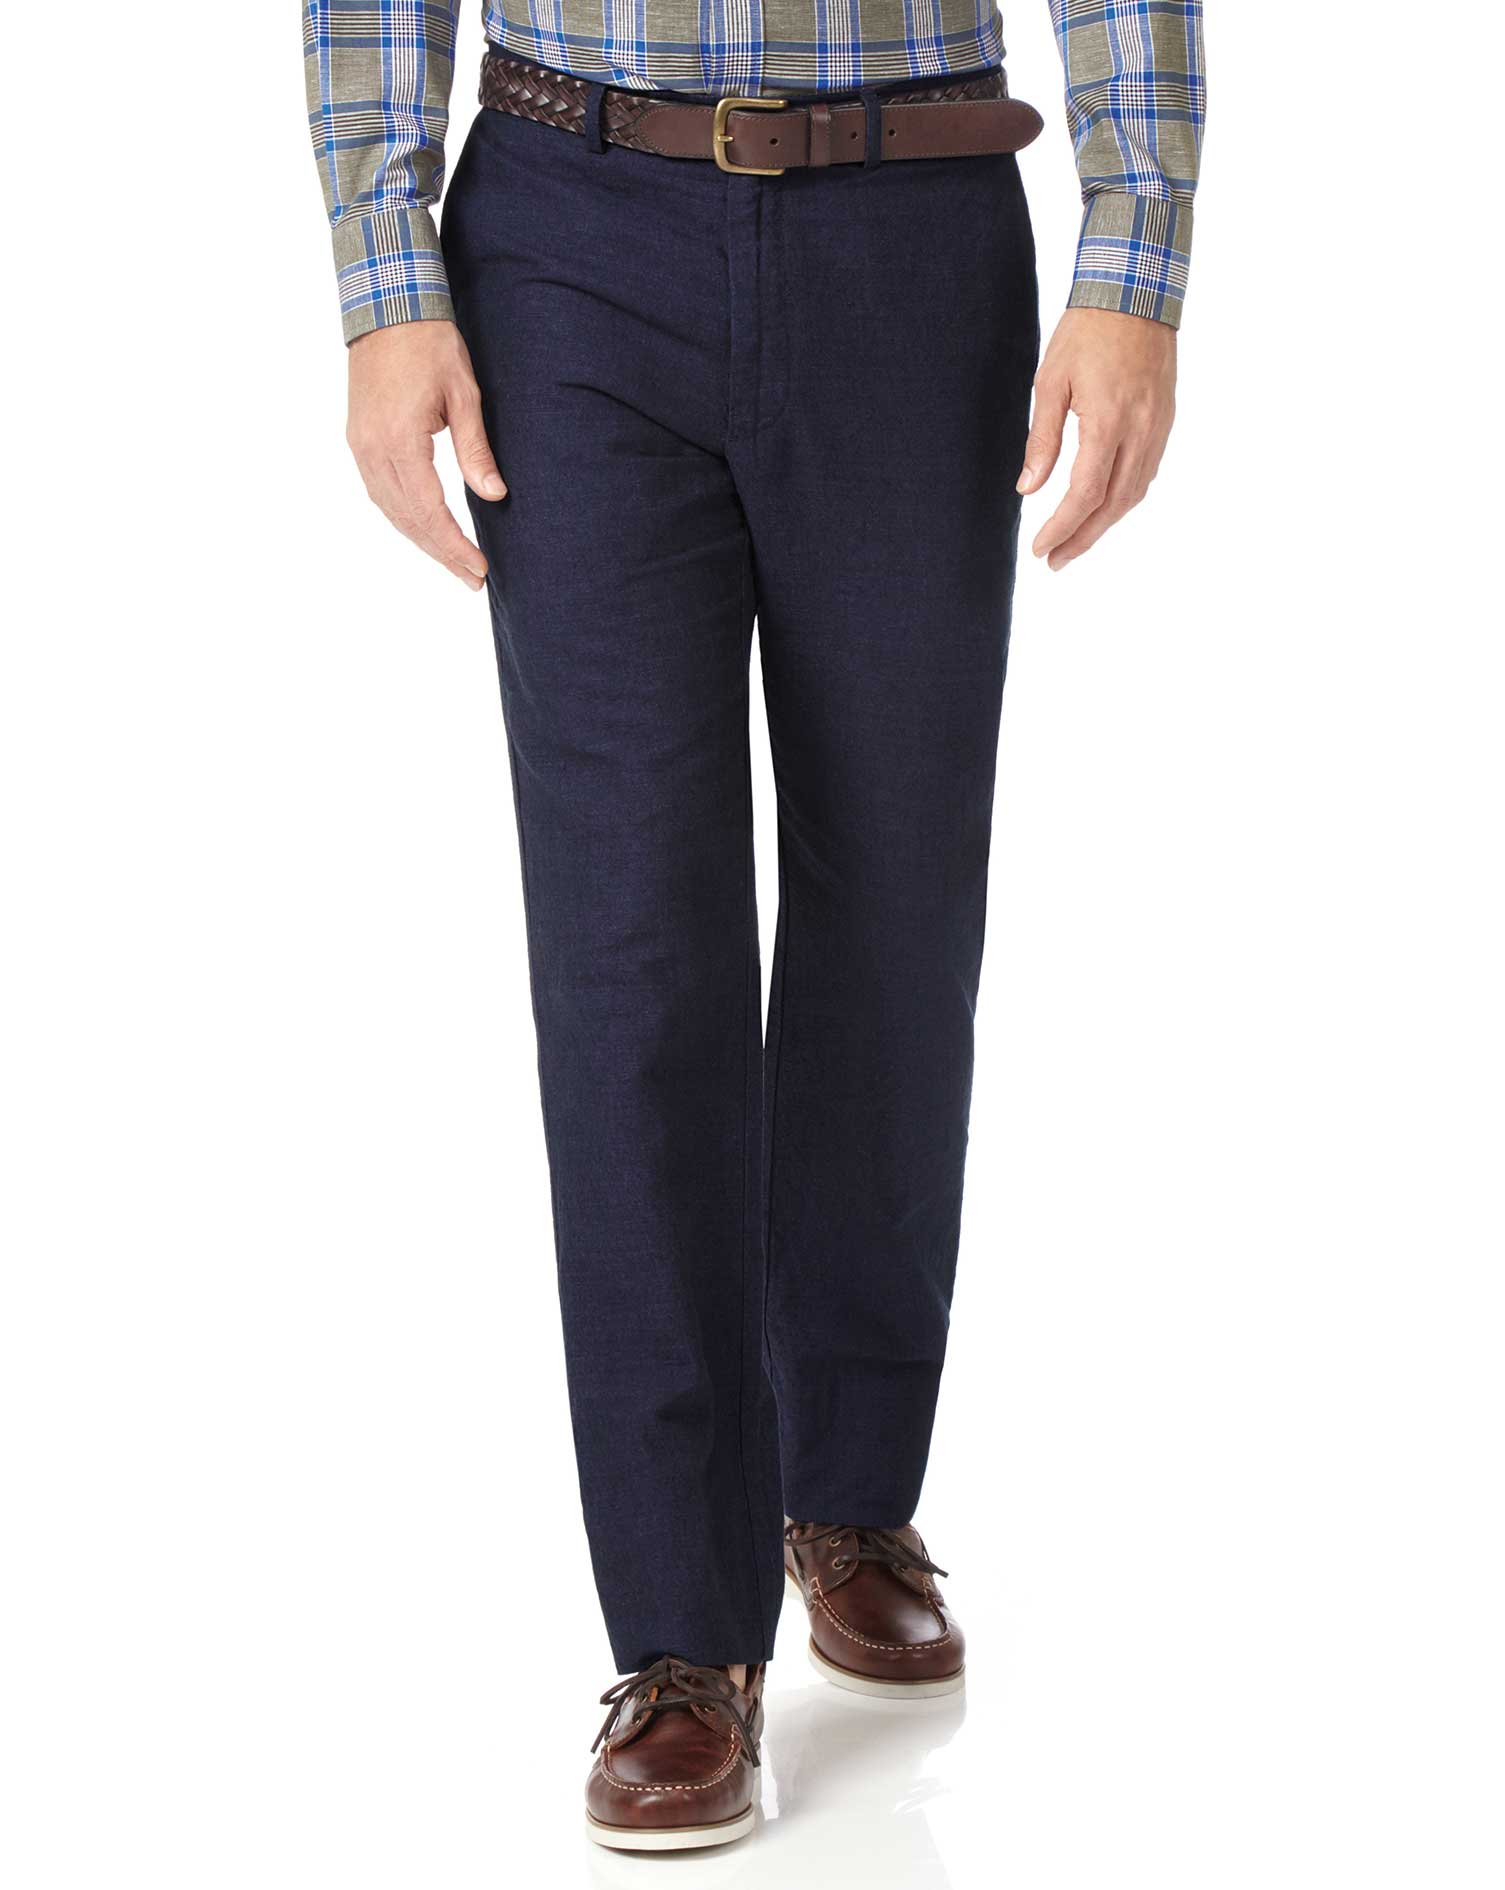 Navy Classic Fit Cotton Linen Trousers Size W38 L32 by Charles Tyrwhitt